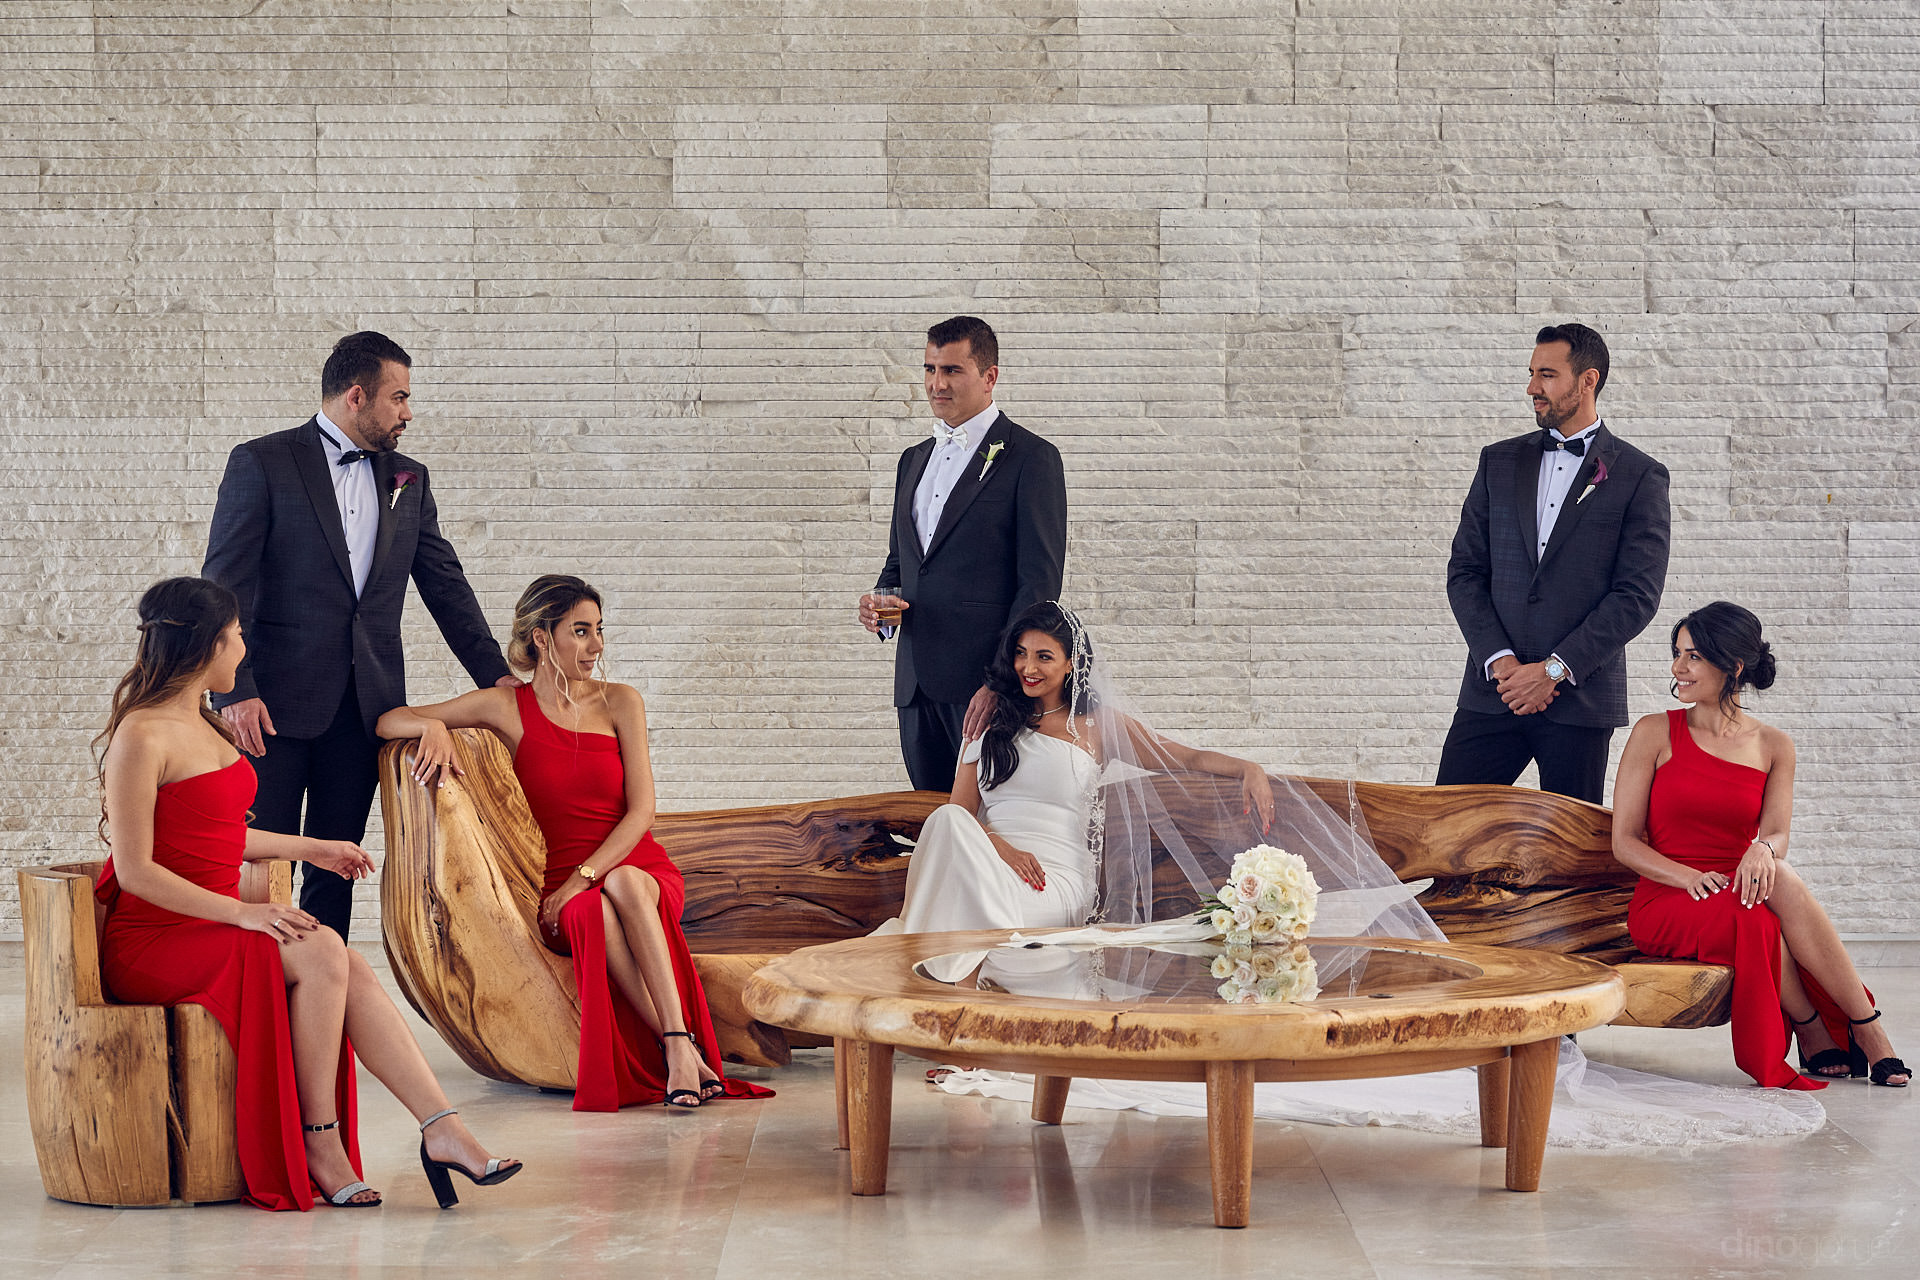 Dino Gomez Is A Wedding, Portrait And Luxury Lifestyle Photographer Located In San Miguel De Allende. With The Support Of His Team, He Creates Artistic, Unique And Memorable Photographs That Will Last Generations.